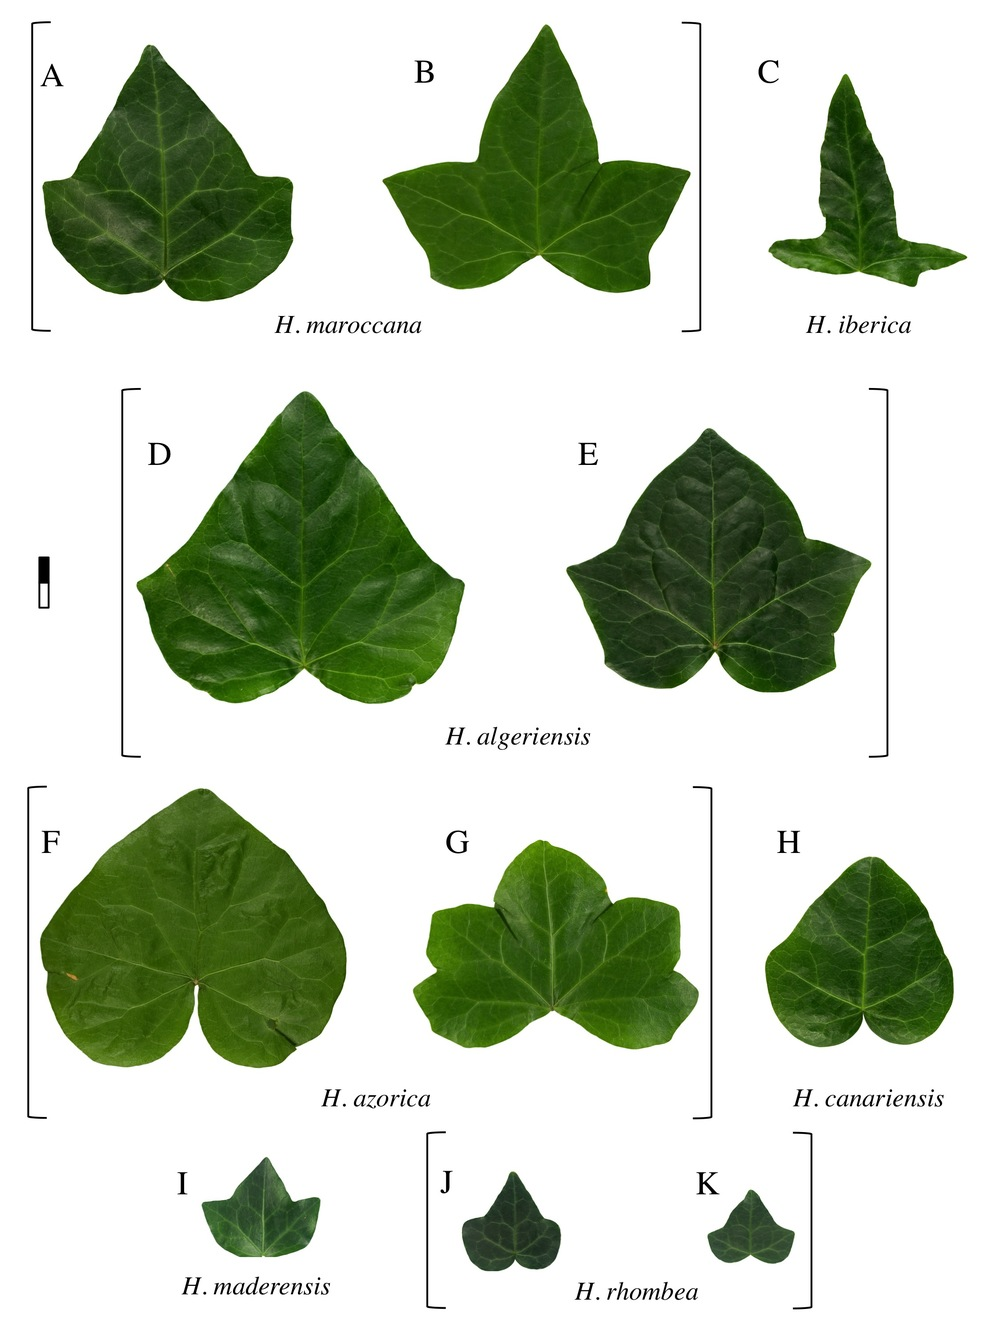 Ivy leaf morphology, plate 1